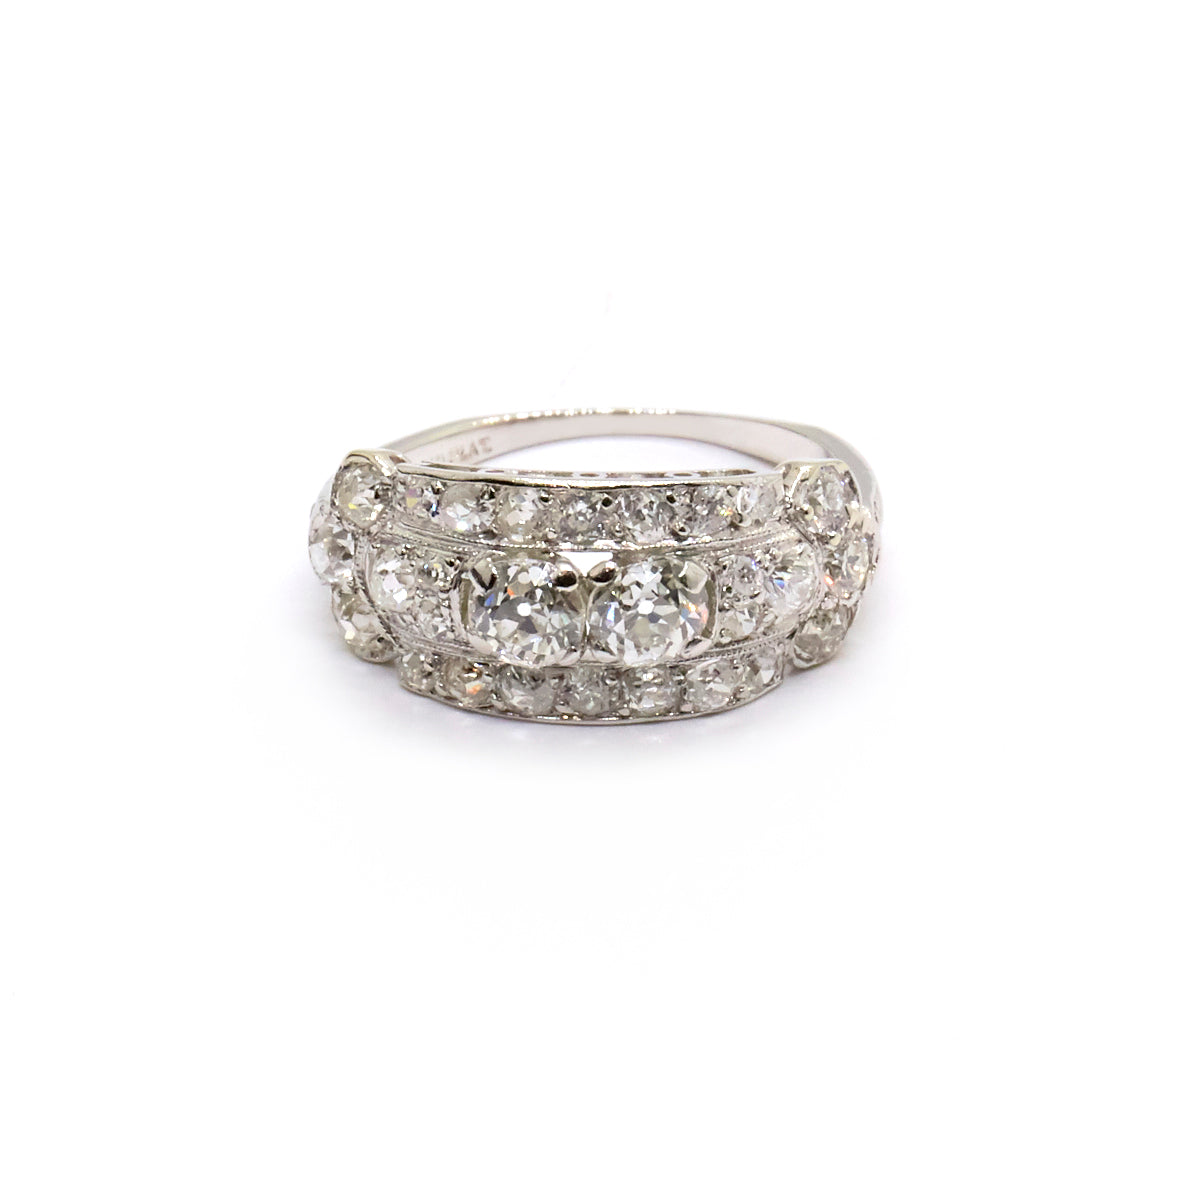 Rosalind | Vintage Edwardian Diamond Ring